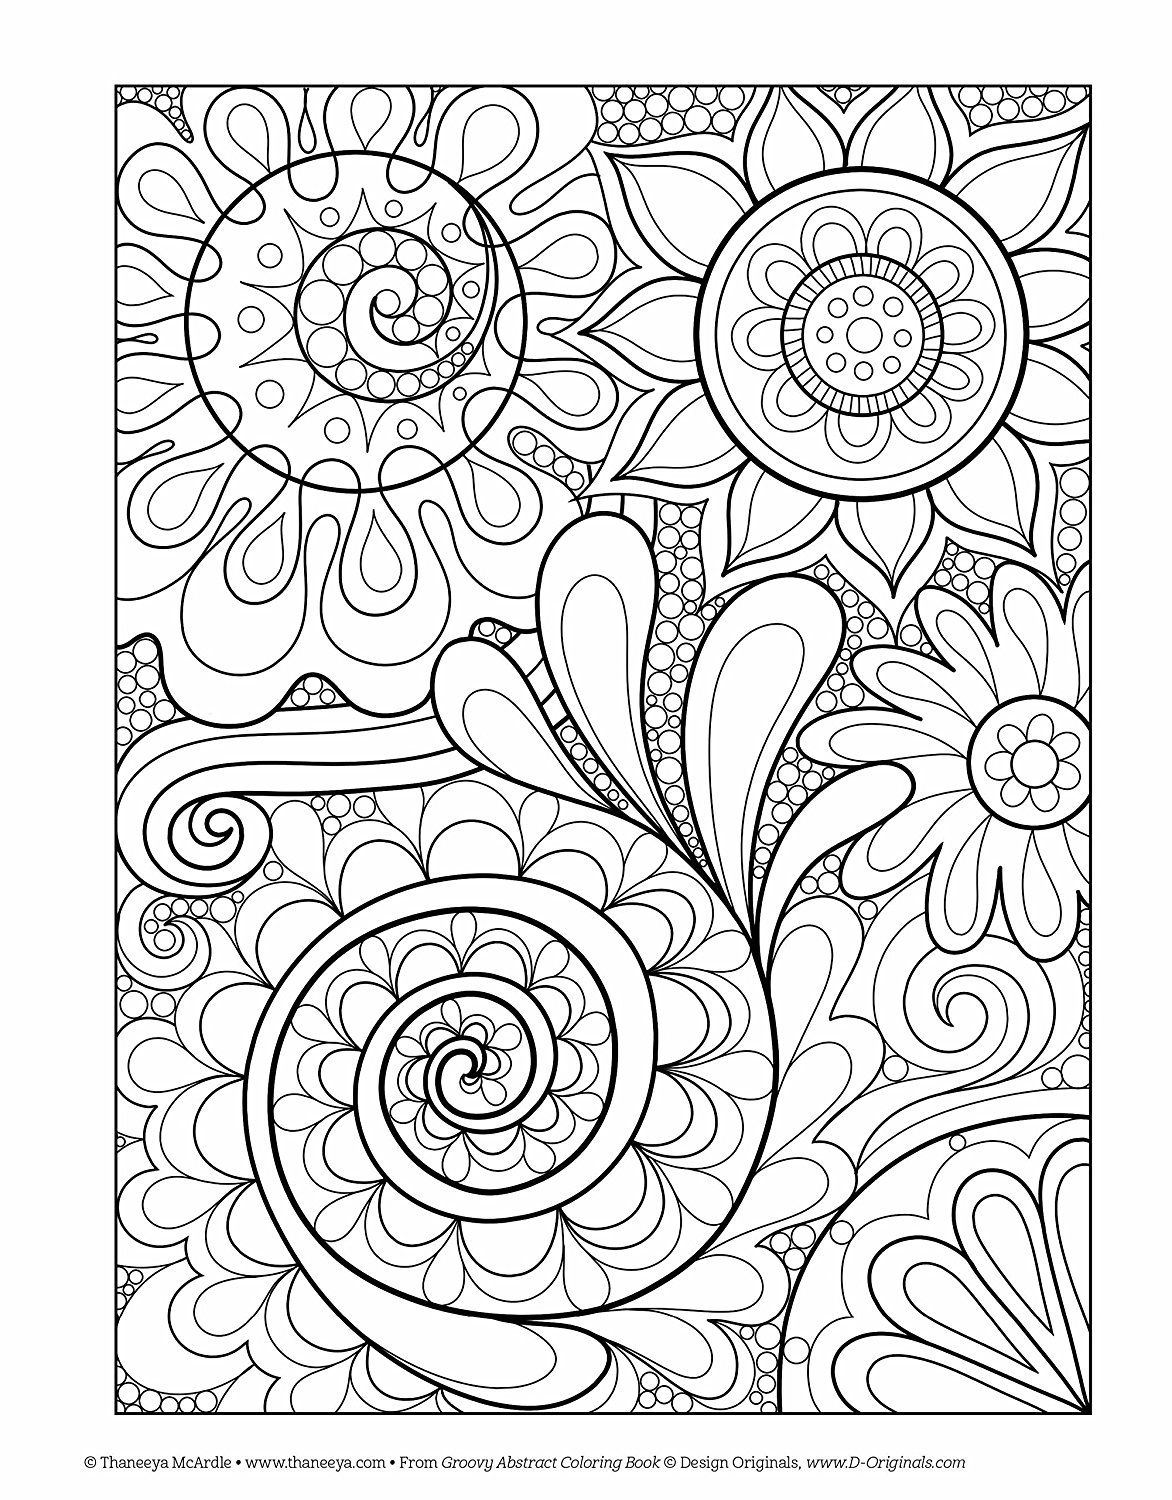 Groovy Abstract Coloring Book: Amazon.ca: Thaneeya McArdle: Books | Abstract  coloring pages, Designs coloring books, Coloring books